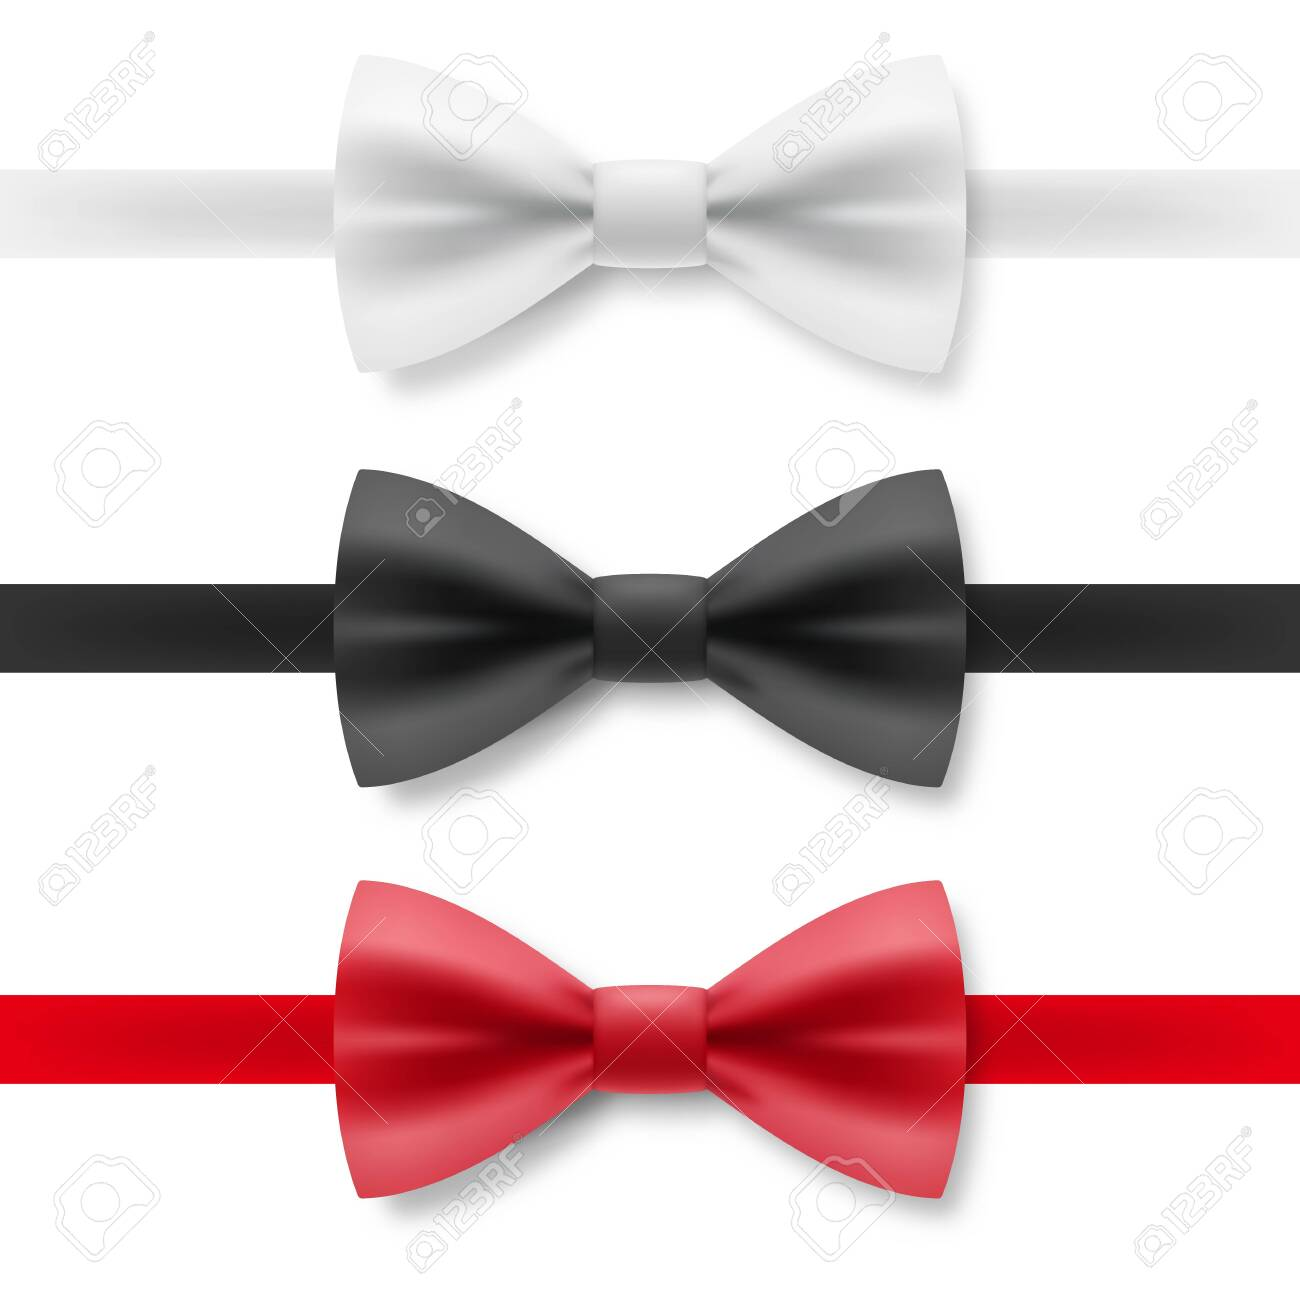 White, Black and Red Bow Tie From Satin Material. Realistic Formal Wear for Gentleman Smoking Bow Tie Garment Accessory on White Background - 135537881